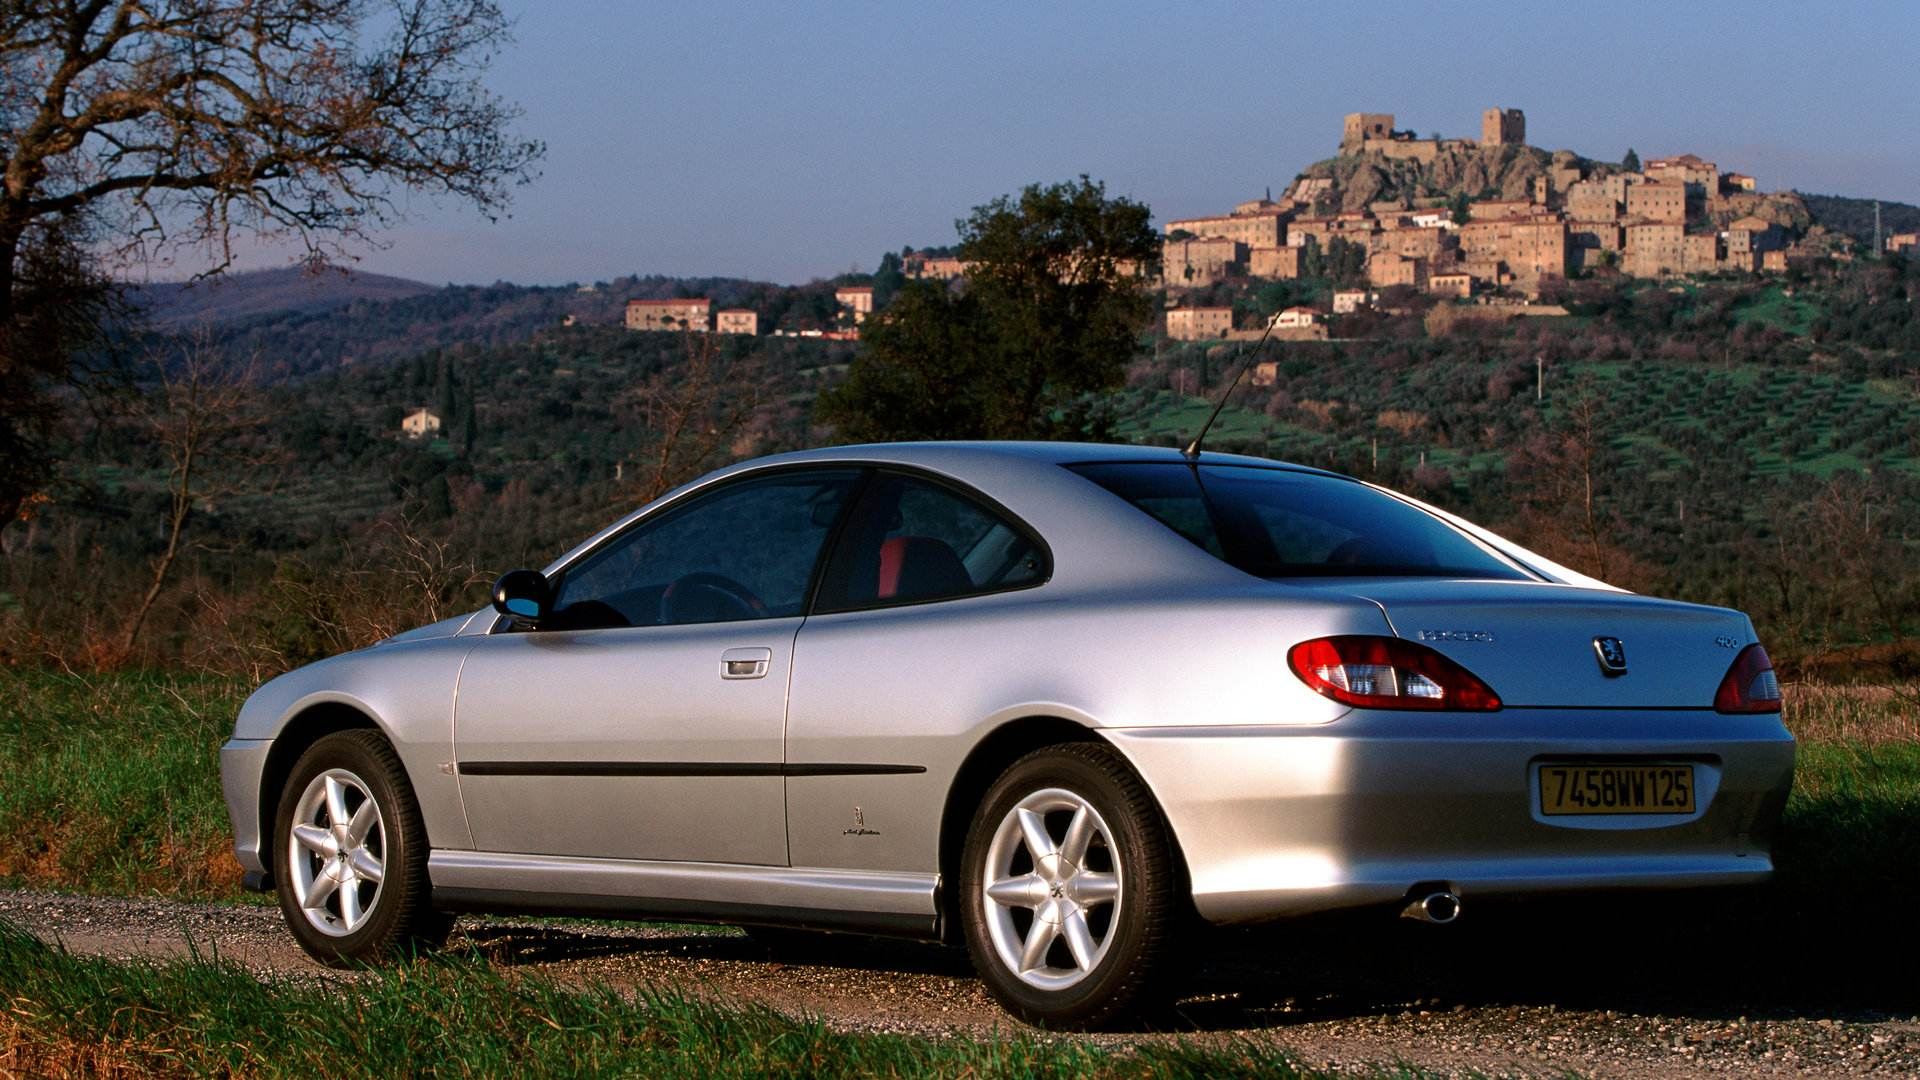 Peugeot 406 Coupe 2